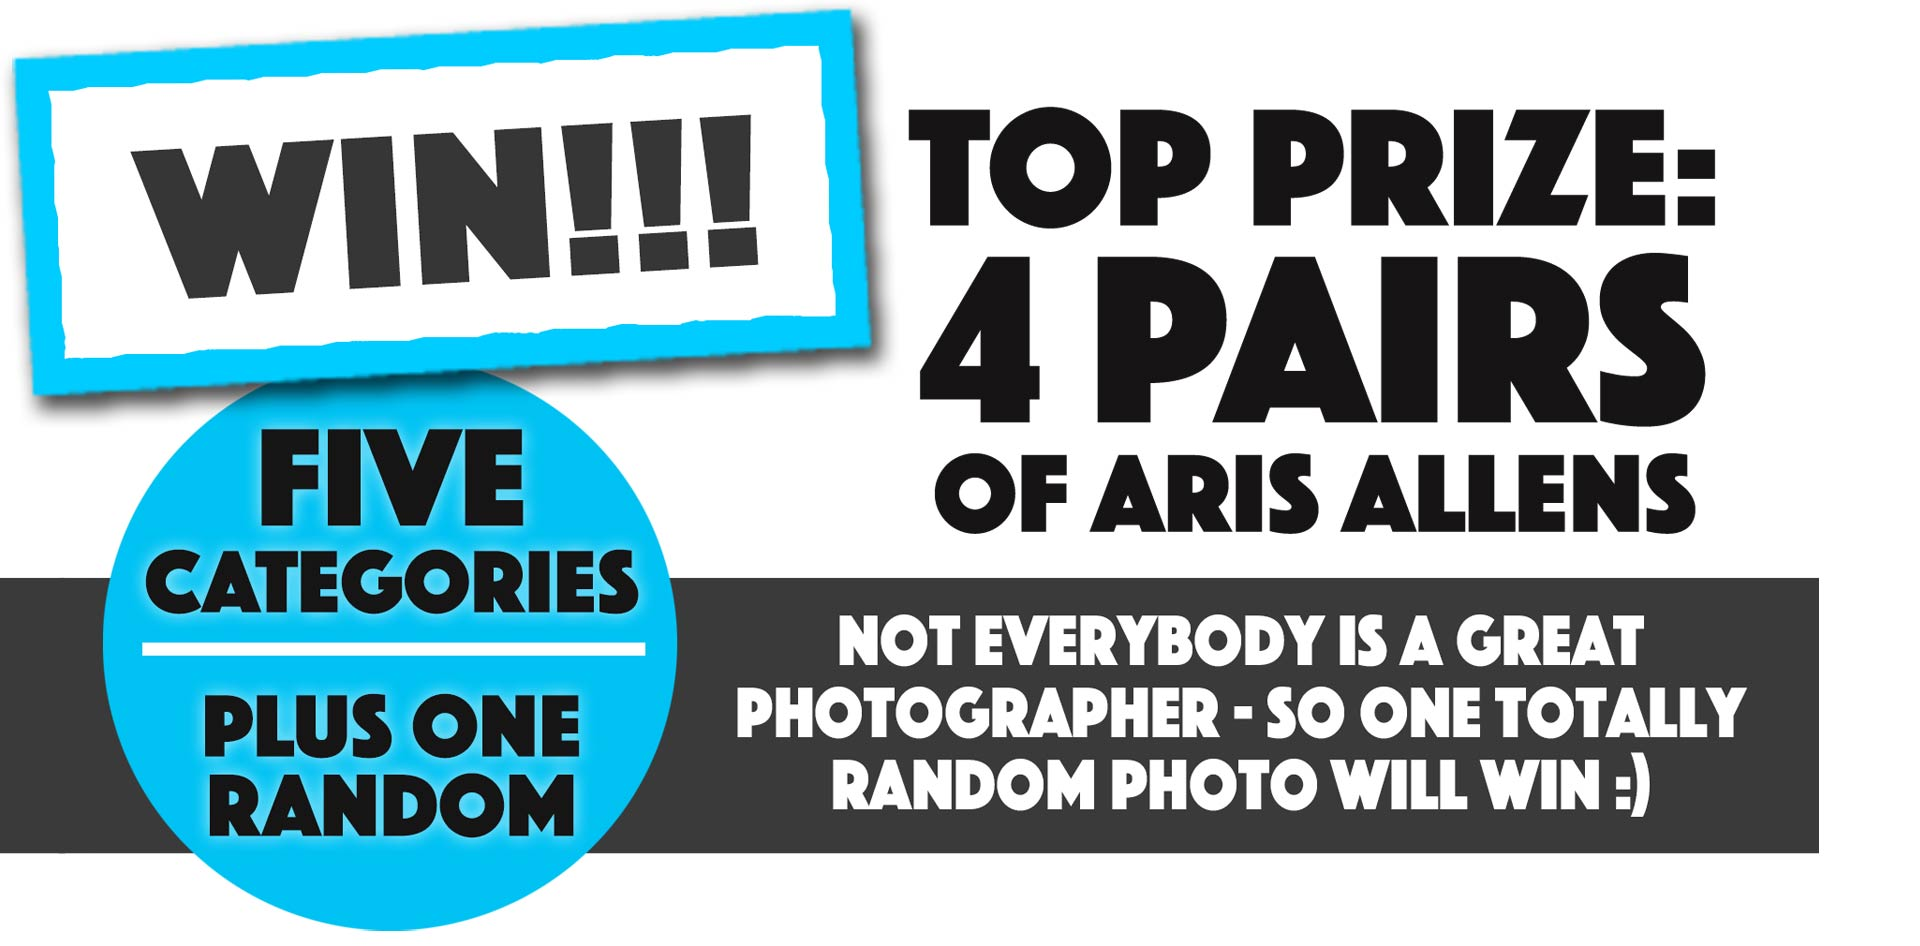 The Aris Allen Photo Contest